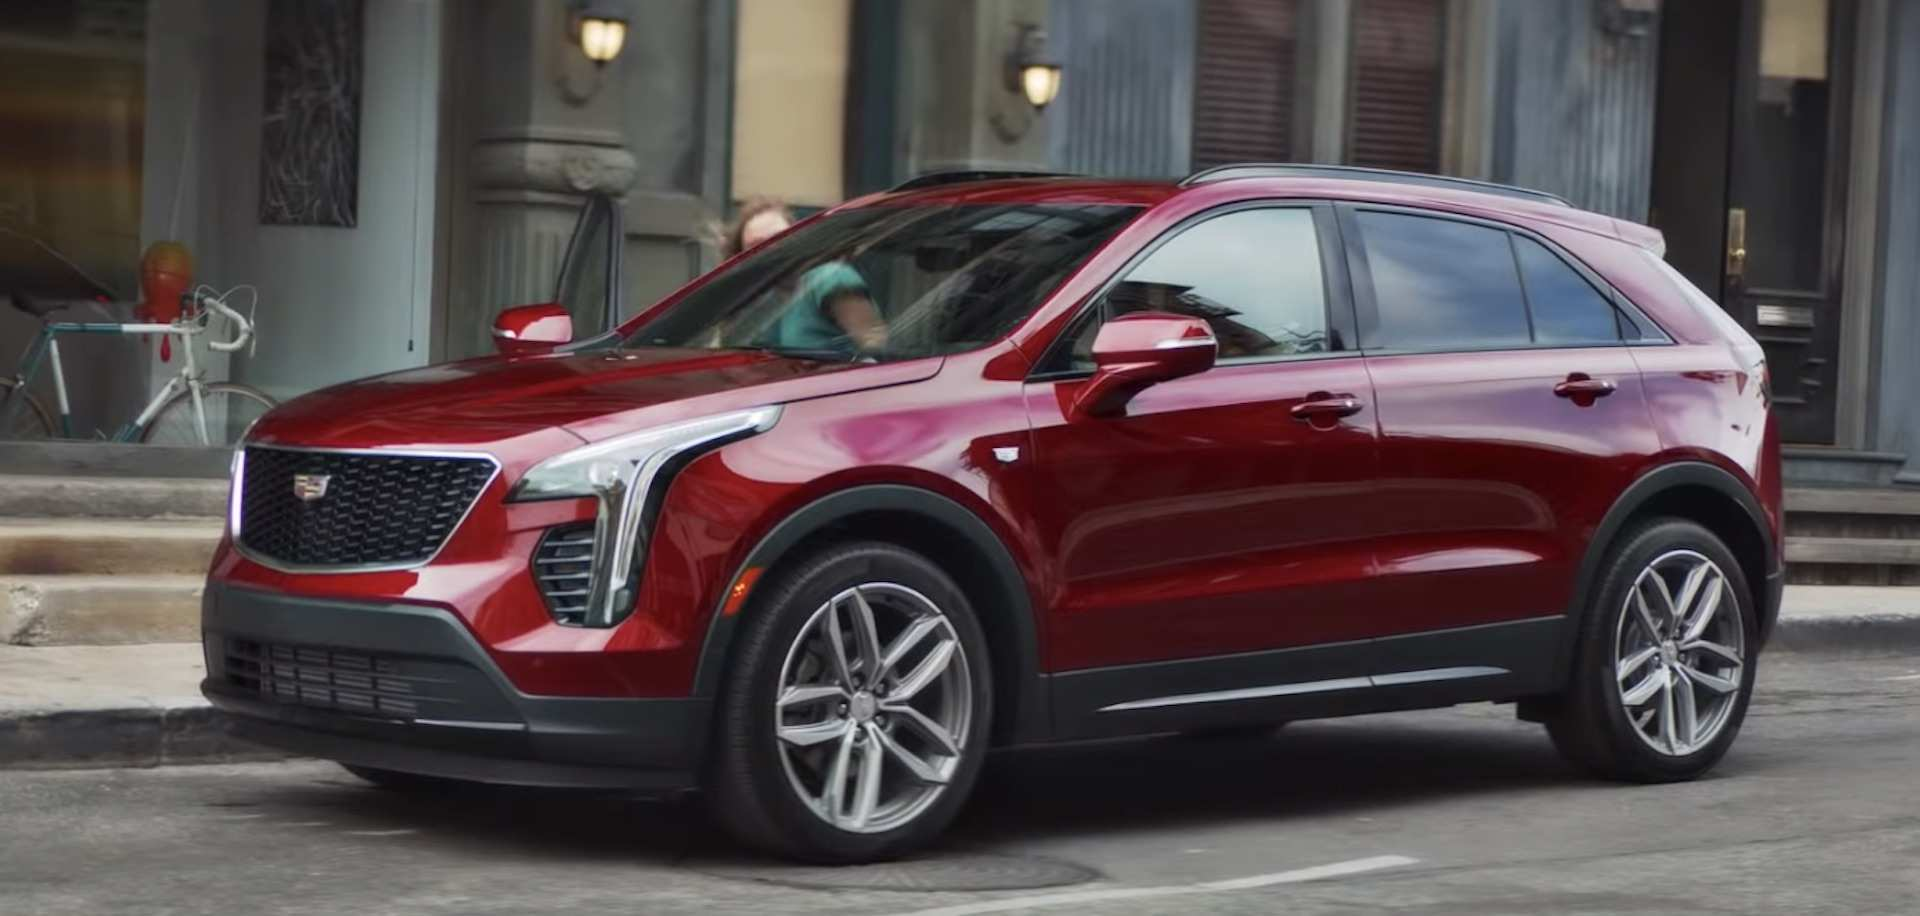 29 Best Review 2019 Cadillac Jeep Prices by 2019 Cadillac Jeep